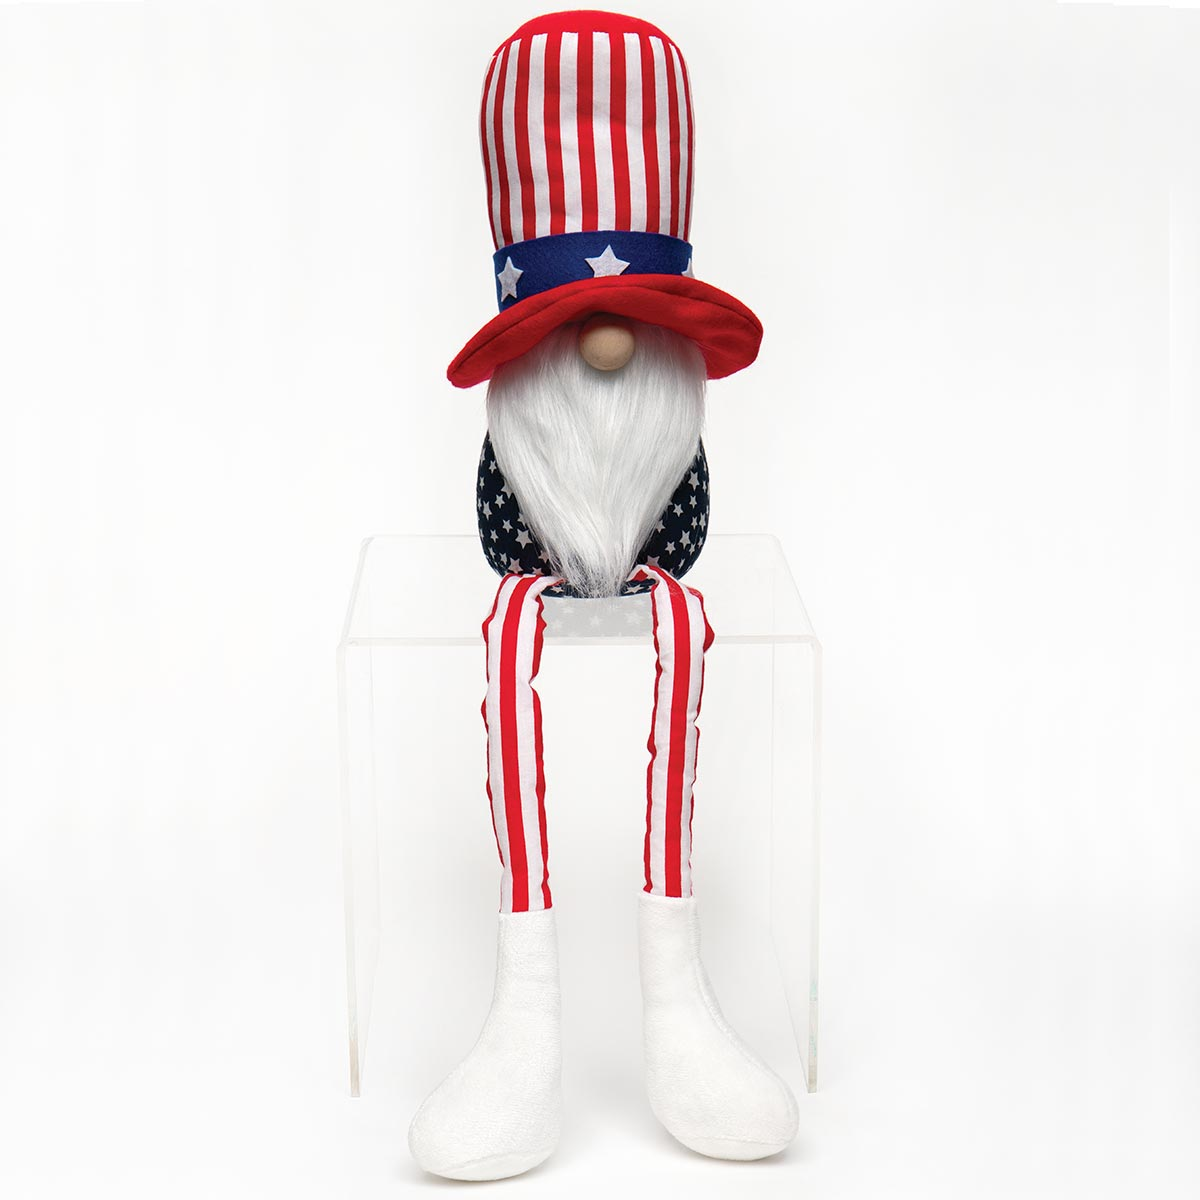 AMERICANO GNOME WITH UNCLE SAM HAT, WOOD NOSE, WHITE BEARD